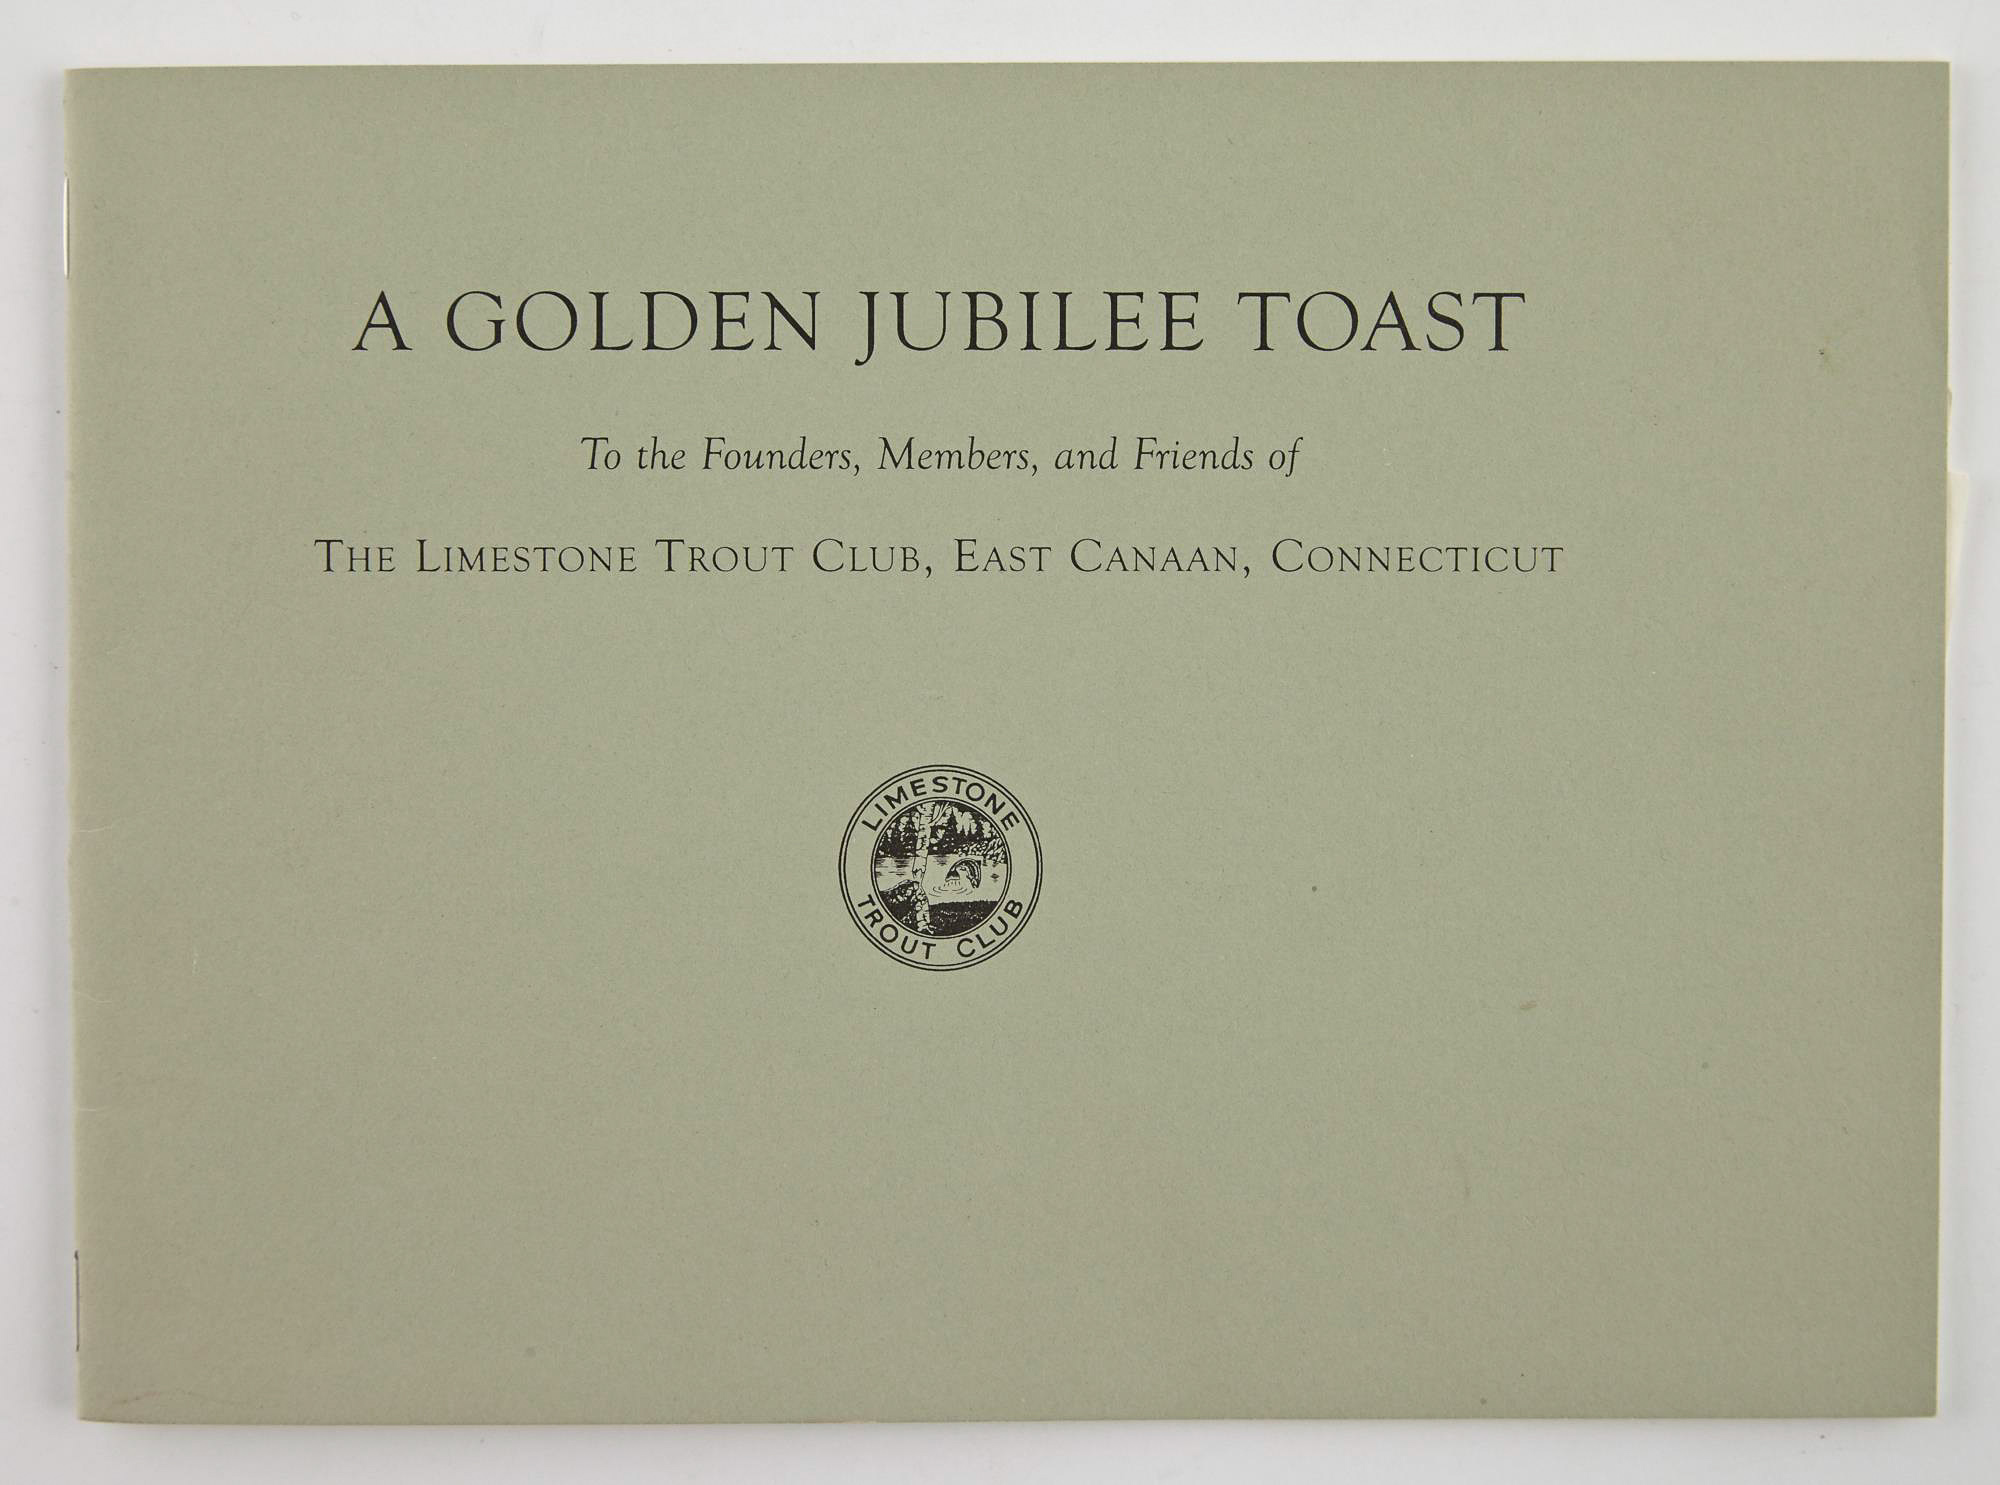 Lot image - [ANGLING CLUB]  A Golden Jubilee Toast To the Founders, Members and Friends of The Limestone Trout Club, East Canaan, Connecticut 1957-2007.